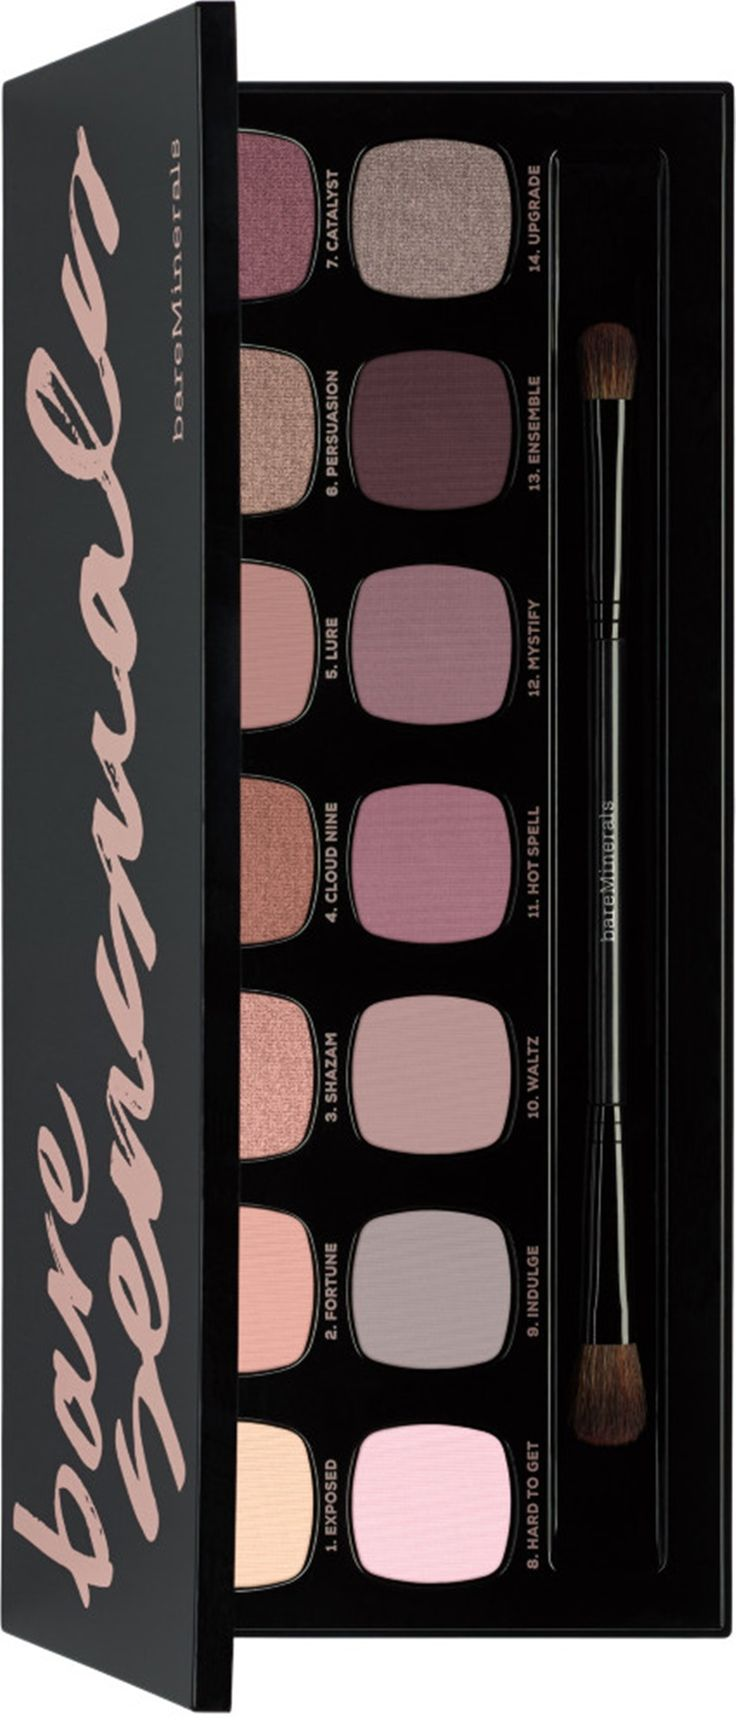 Bare Minerals The Bare Sensuals is a new 14.0 Ready Eyeshadow Palette arriving for Spring 2017 that includes 14 gorgeous shades of Bare Minerals Ready Eyes